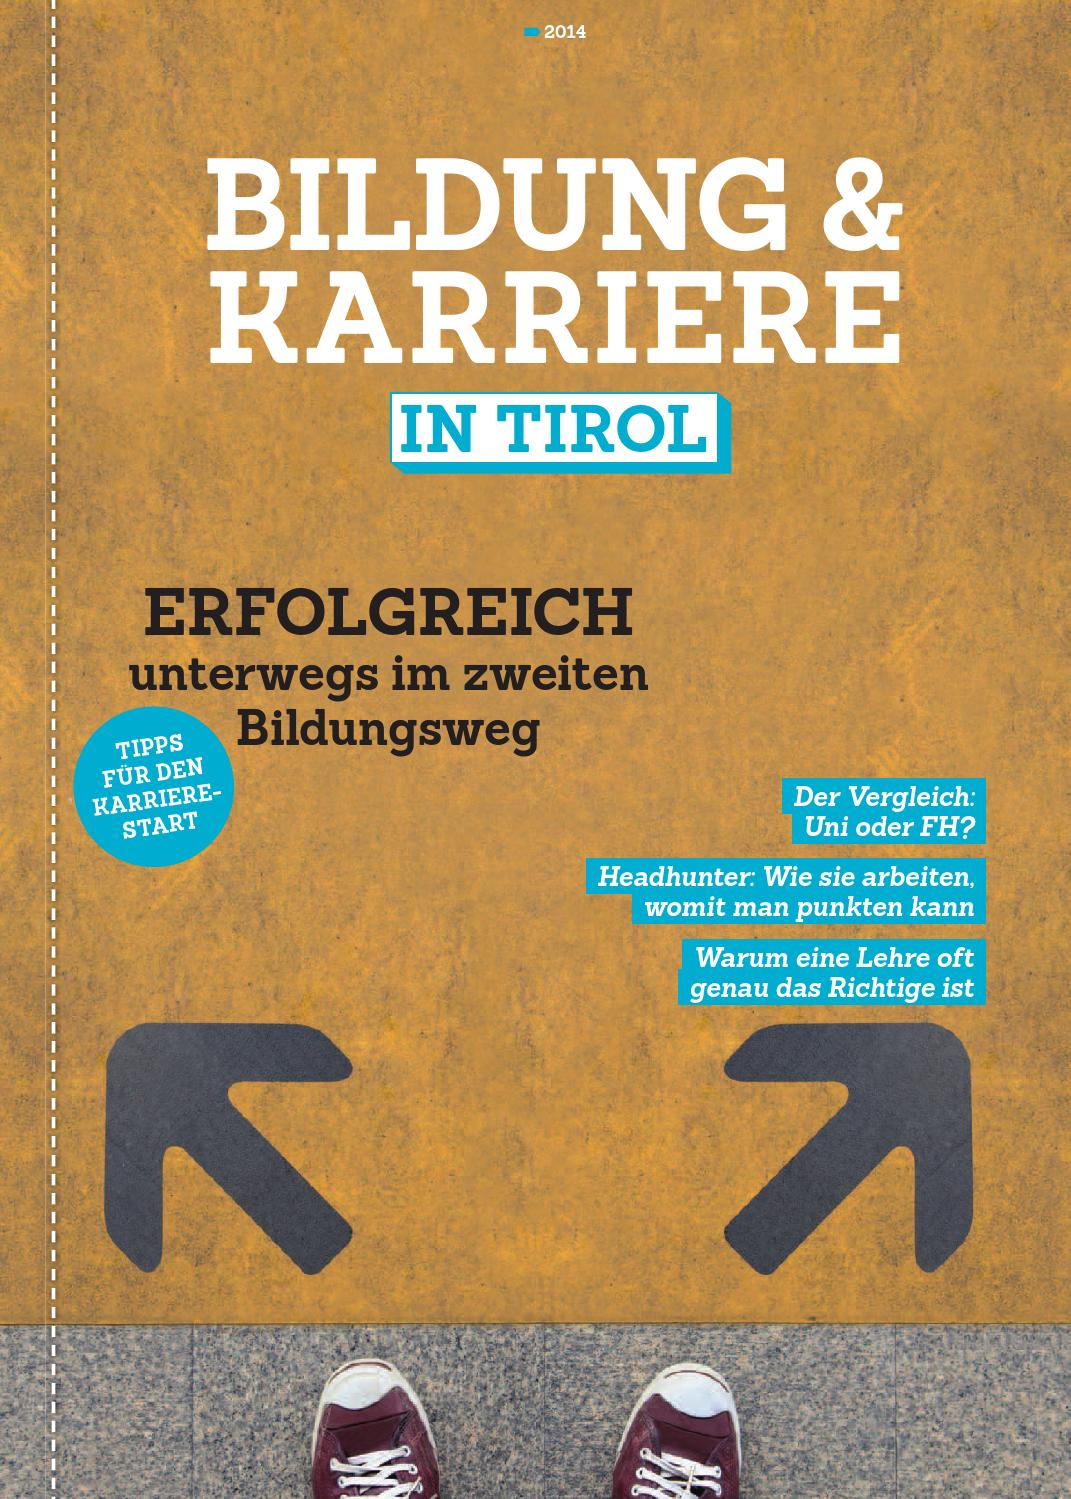 Bildung & Karriere in Tirol (März 2014) by TARGET GROUP Publishing ...